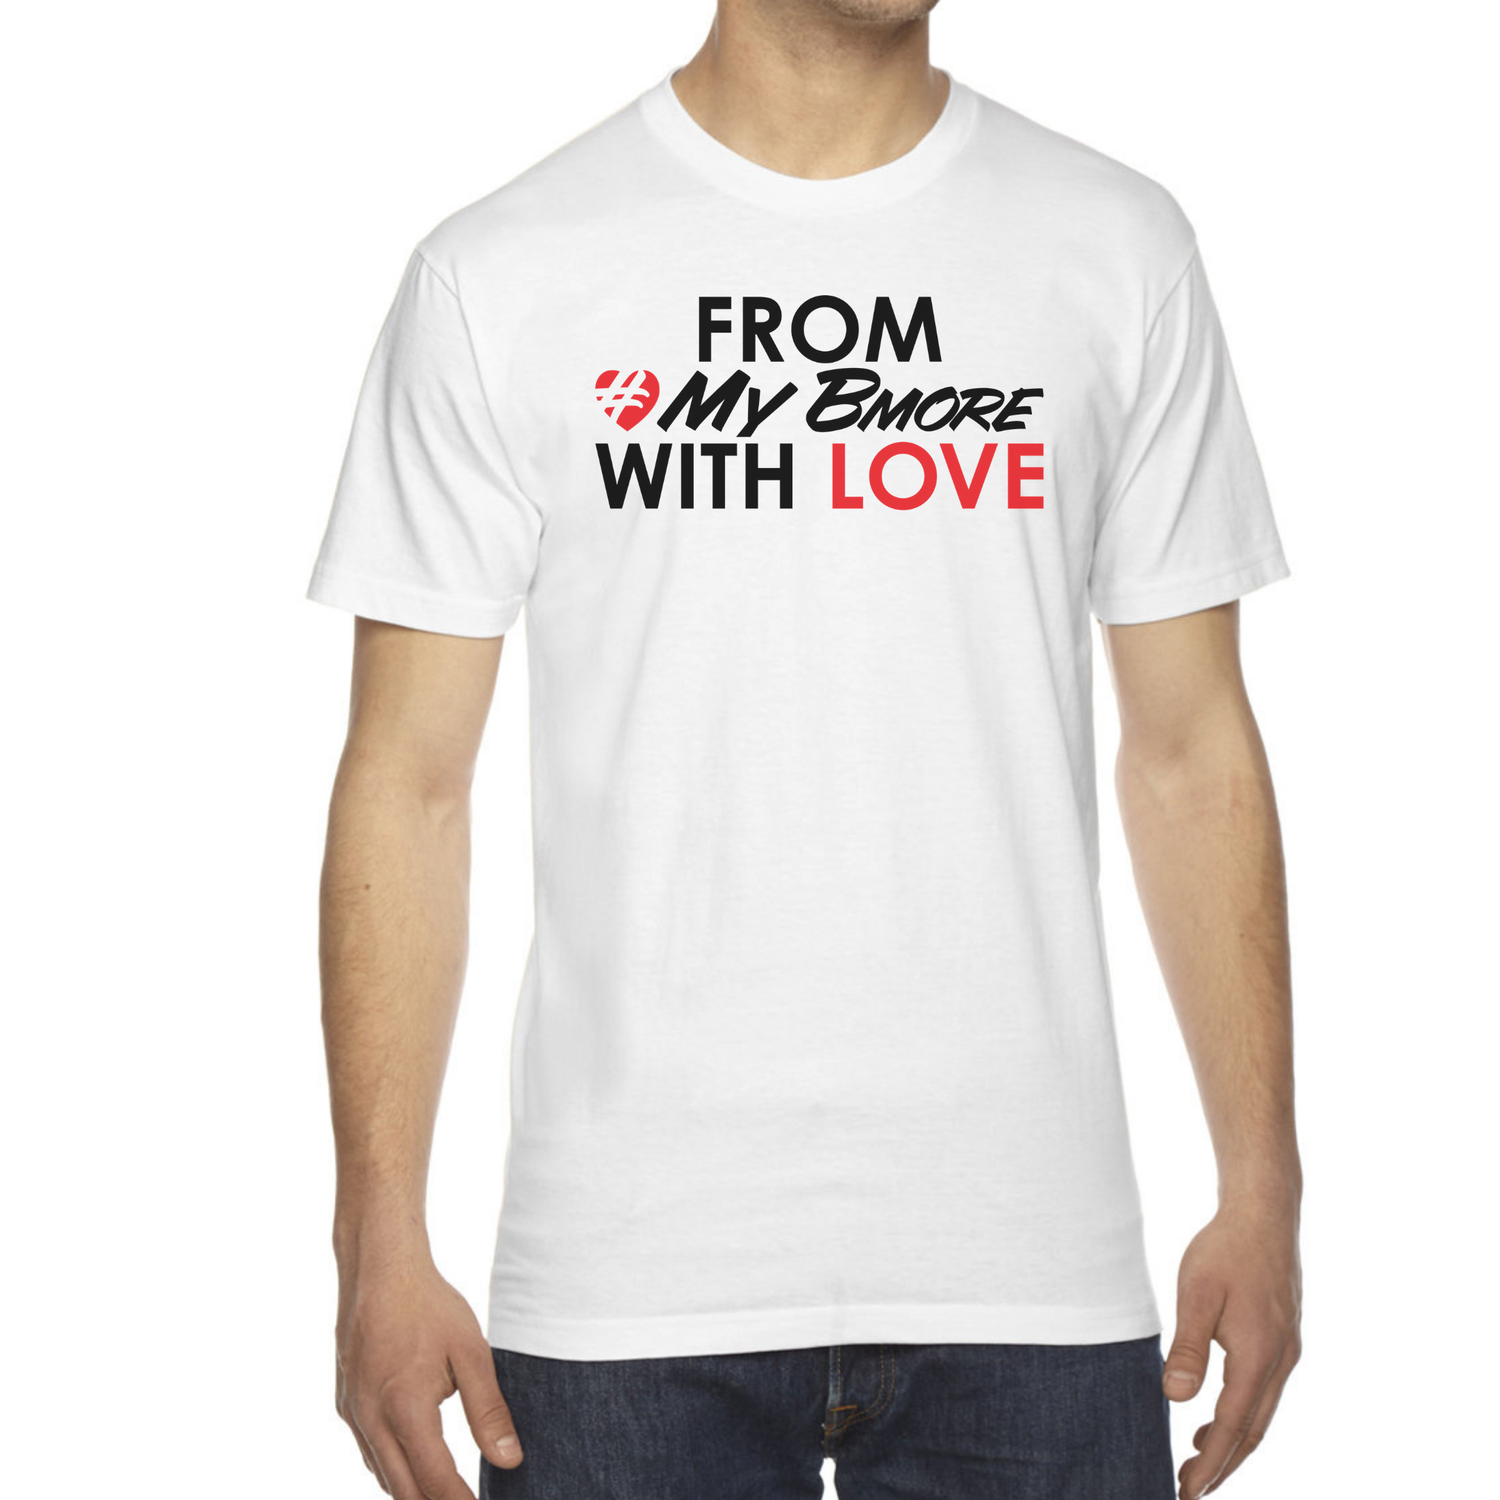 Image of From #MyBmore With Love - Special Edition T-Shirt